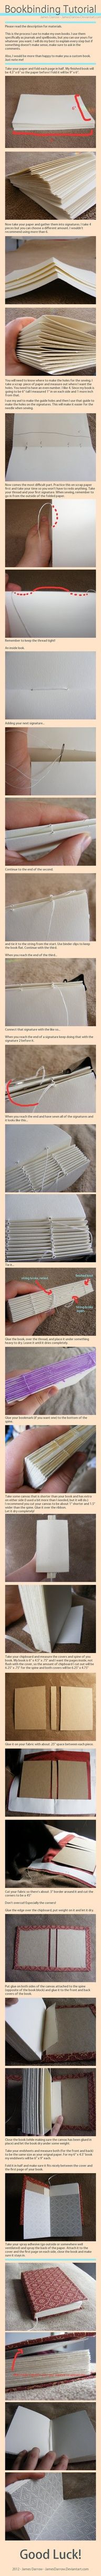 book binding tutorial Nothing beats the freshness of the mountain air! Fresh and free.